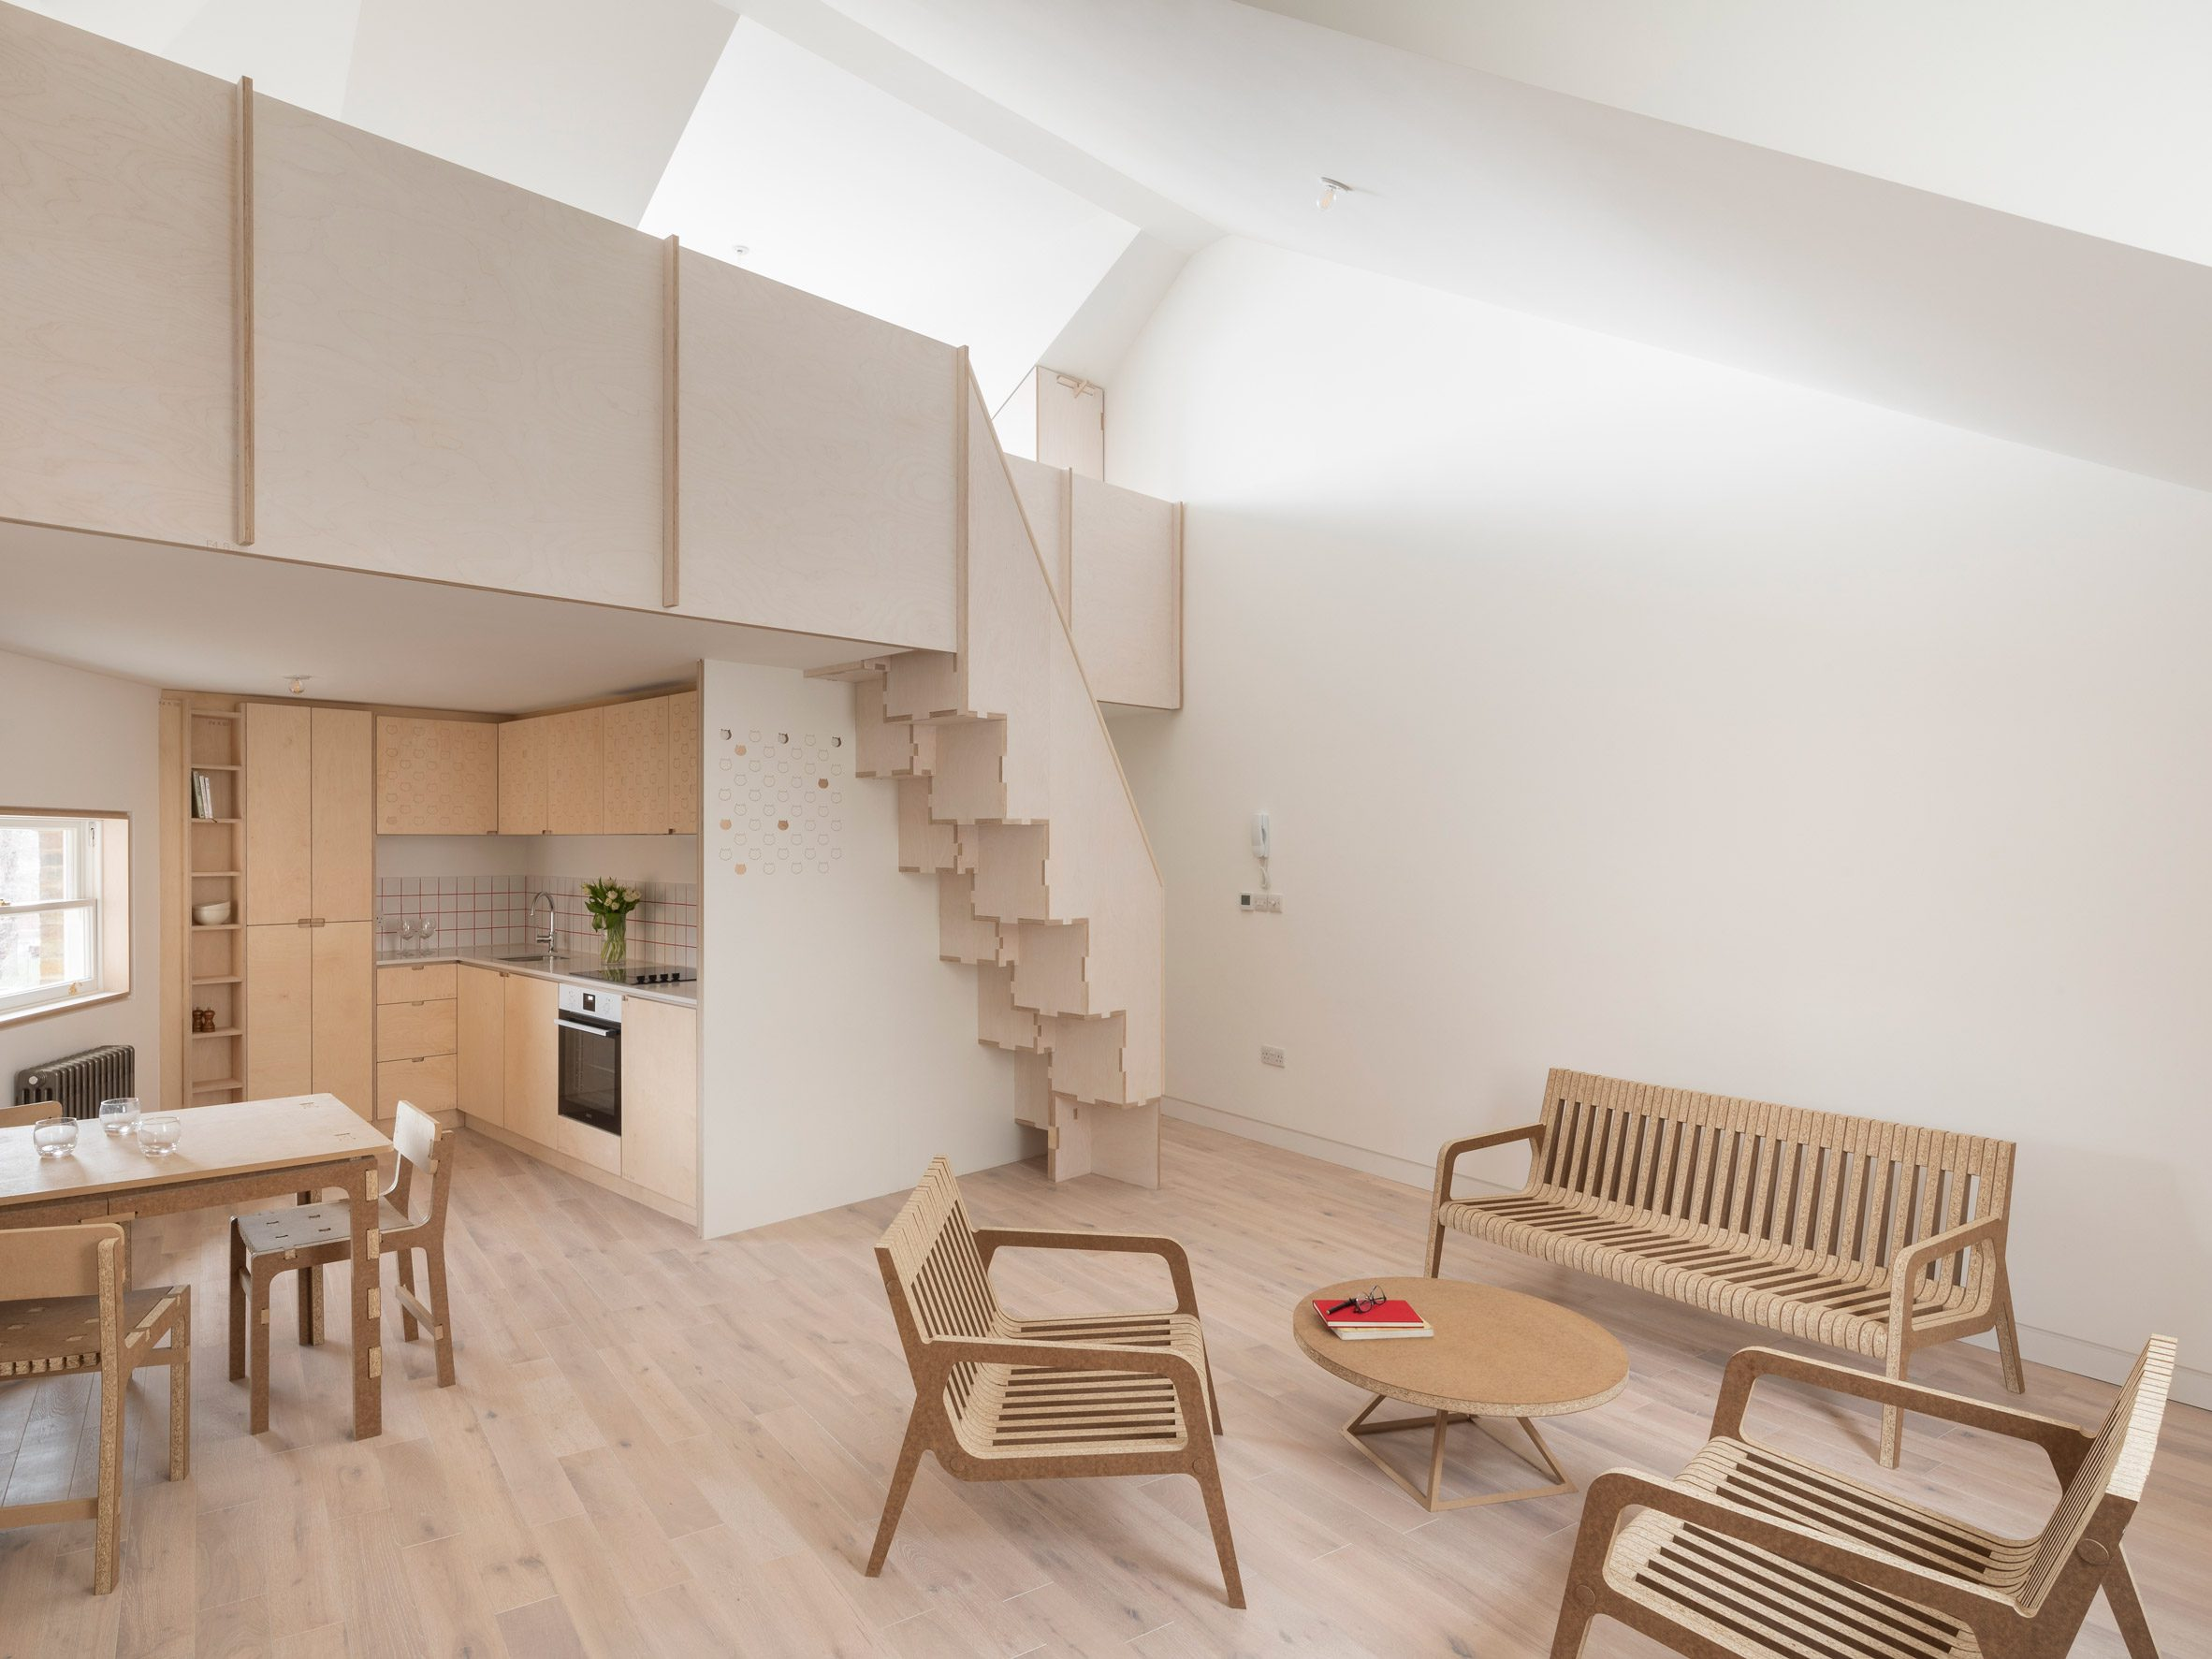 Second floor flat in The Queen of Catford by Tsuruta Architects